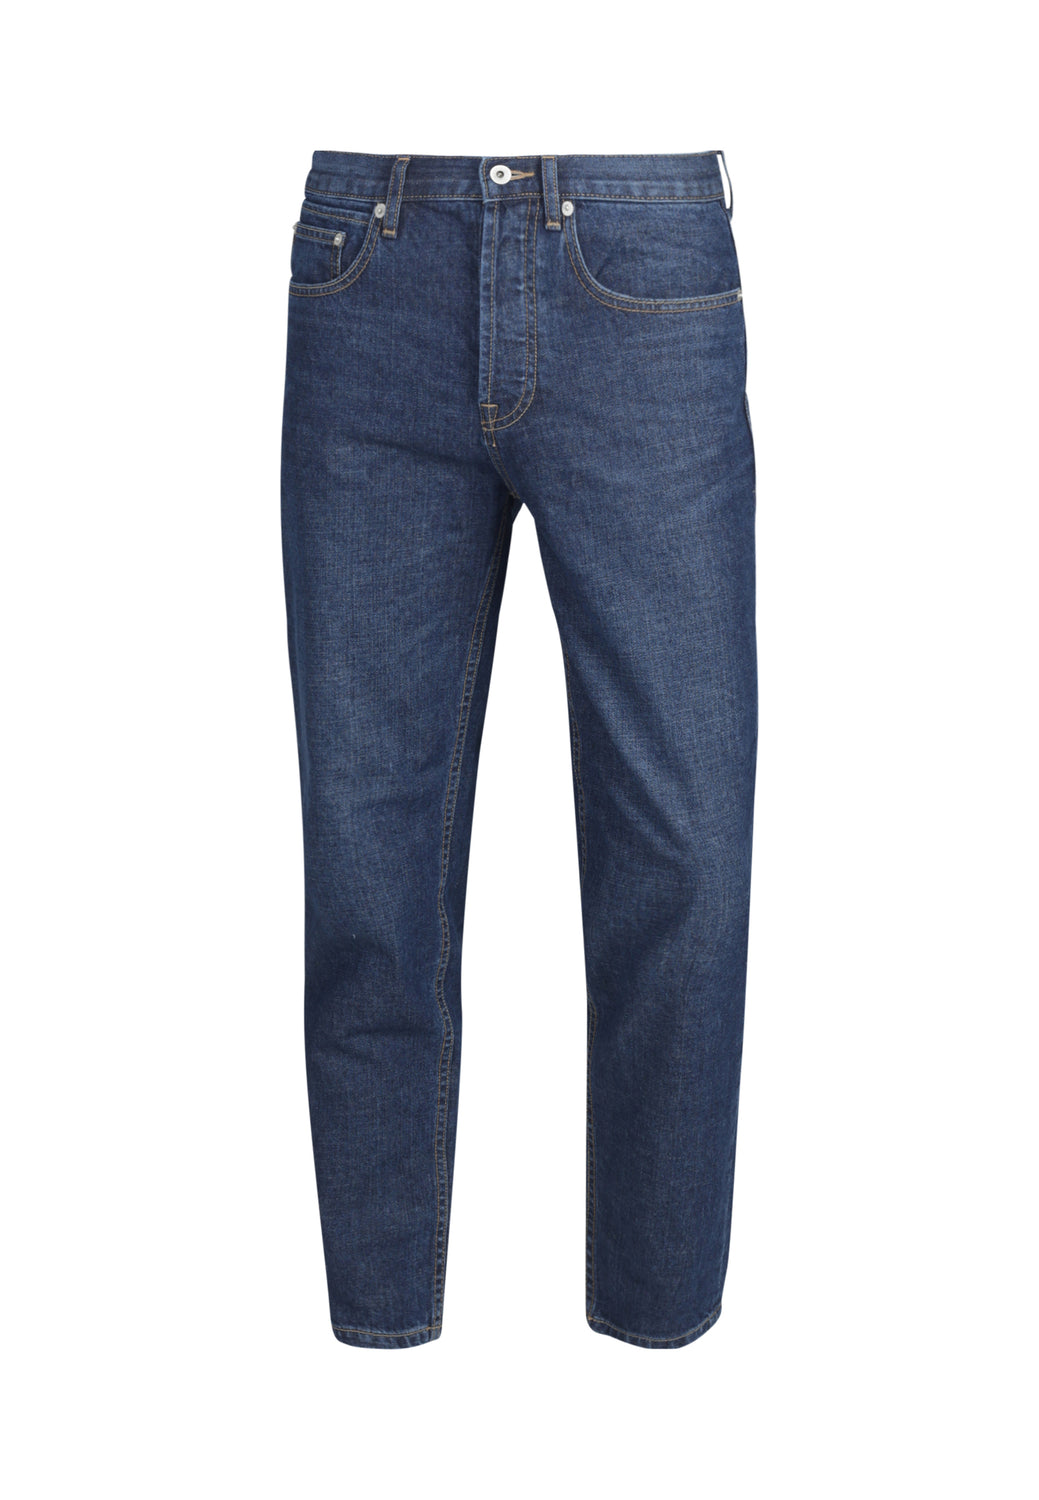 JACK // Organic Tapered Fit Jeans in Dark Wash - Monkee Genes Organic Jeans Denim - Men's Tapered Monkee Genes Official  Monkee Genes Official